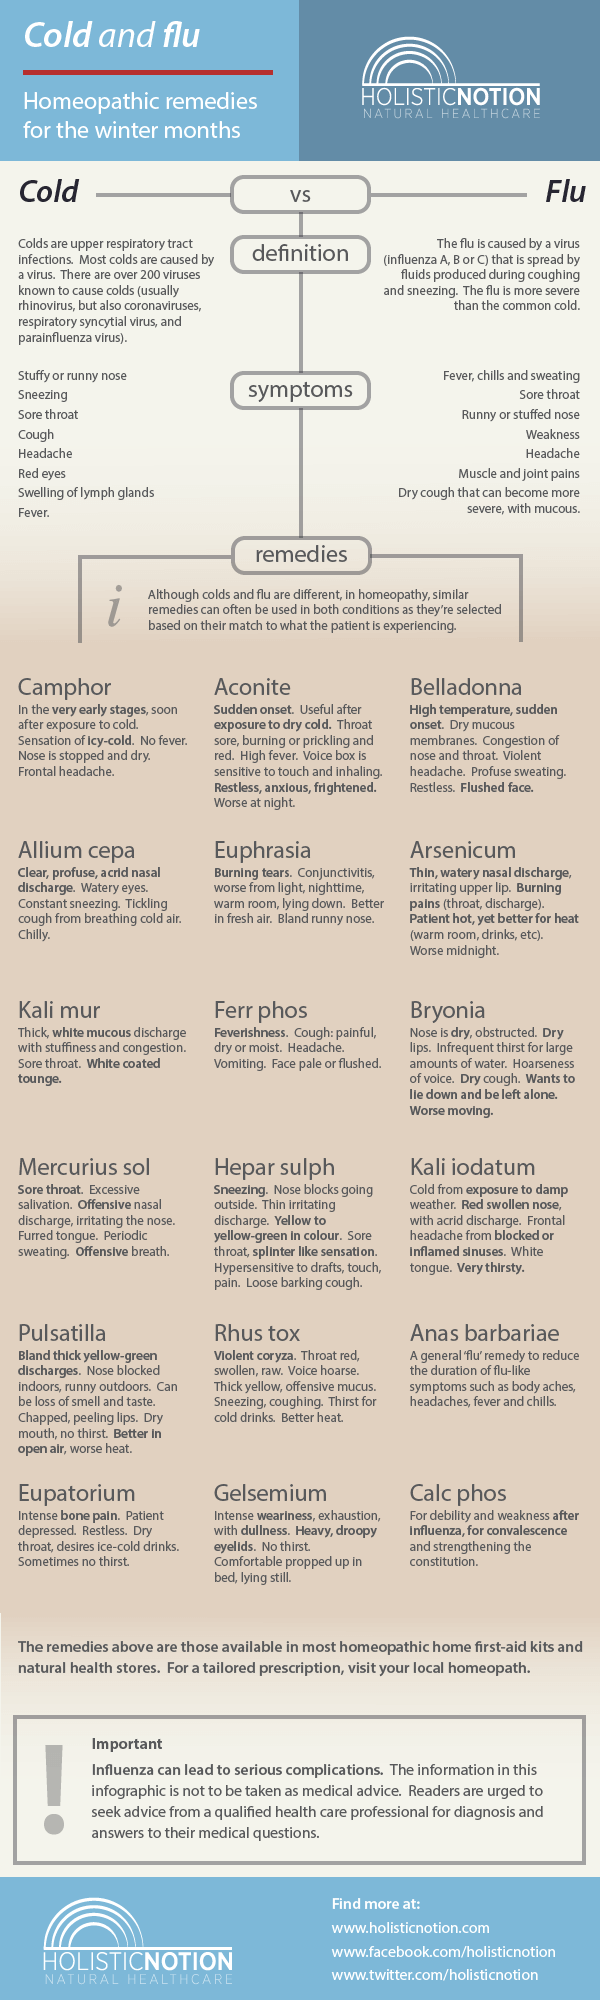 Infographic-Colds-and-Flu-remedies-2015